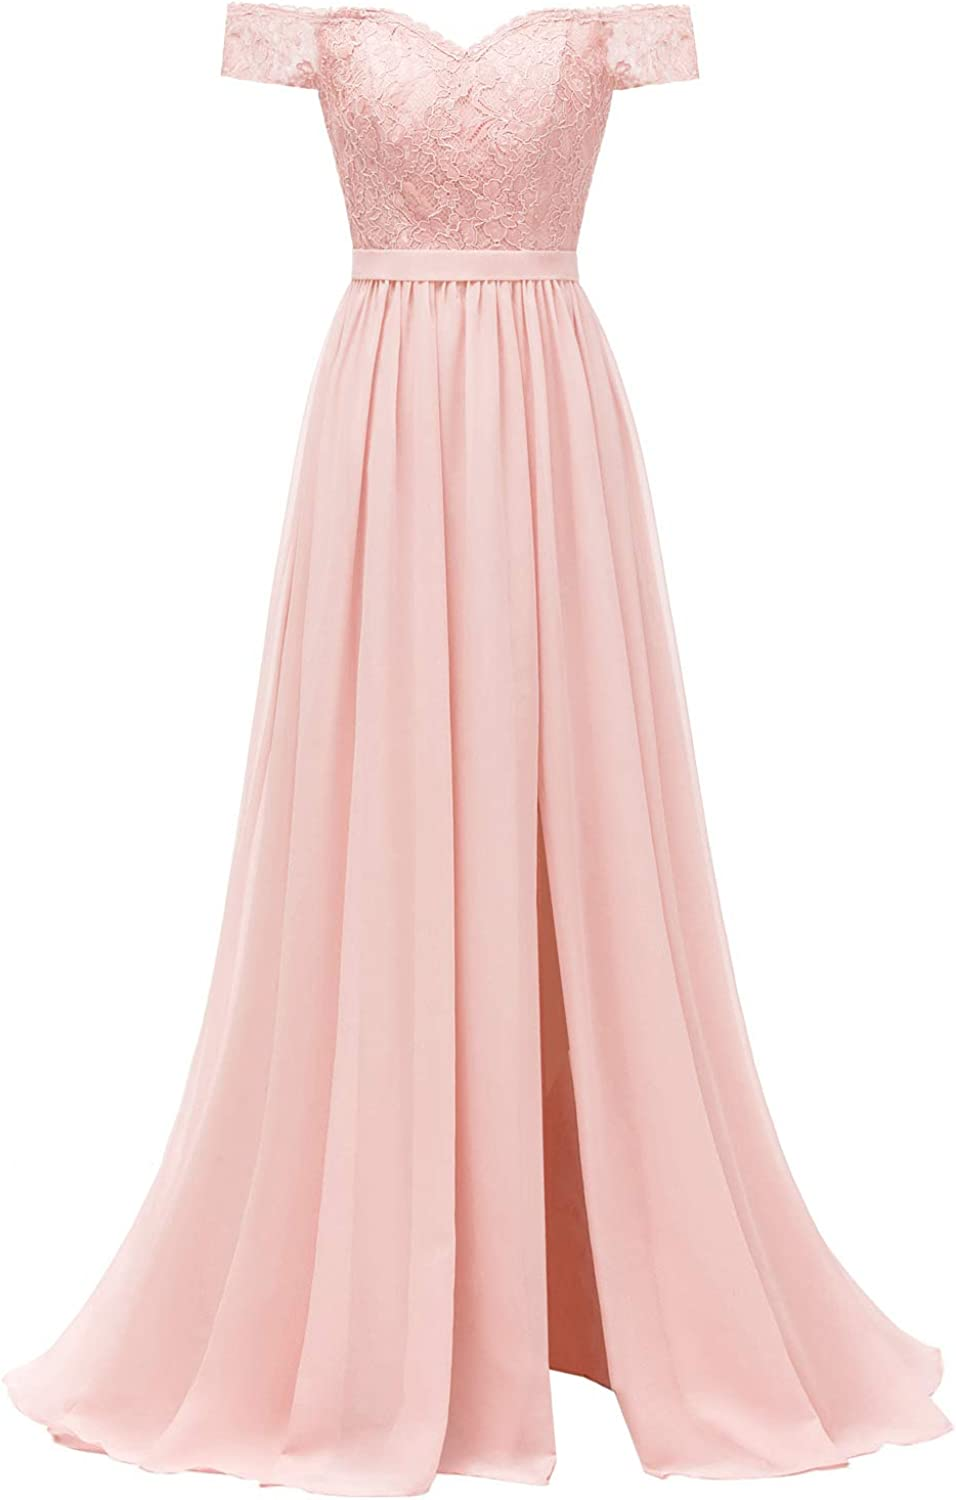 Molisa Off Shoulder Lace Bridesmaid Dress with Slit Chiffon Prom Dresses Long Wedding Evening Gown